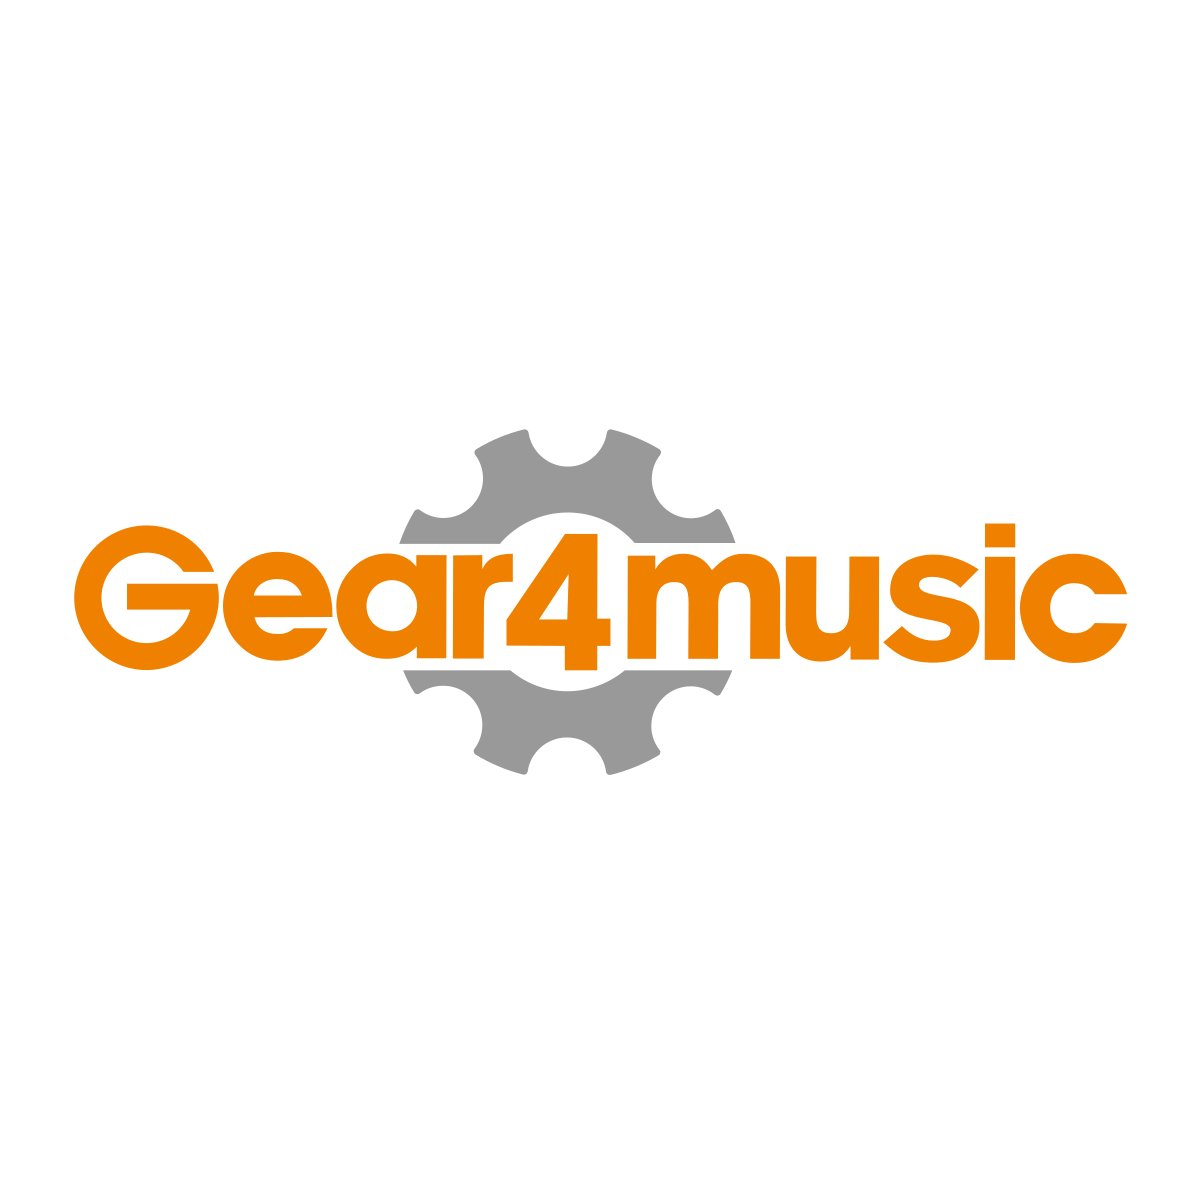 Soporte Doble de Guitarra de Gear4music